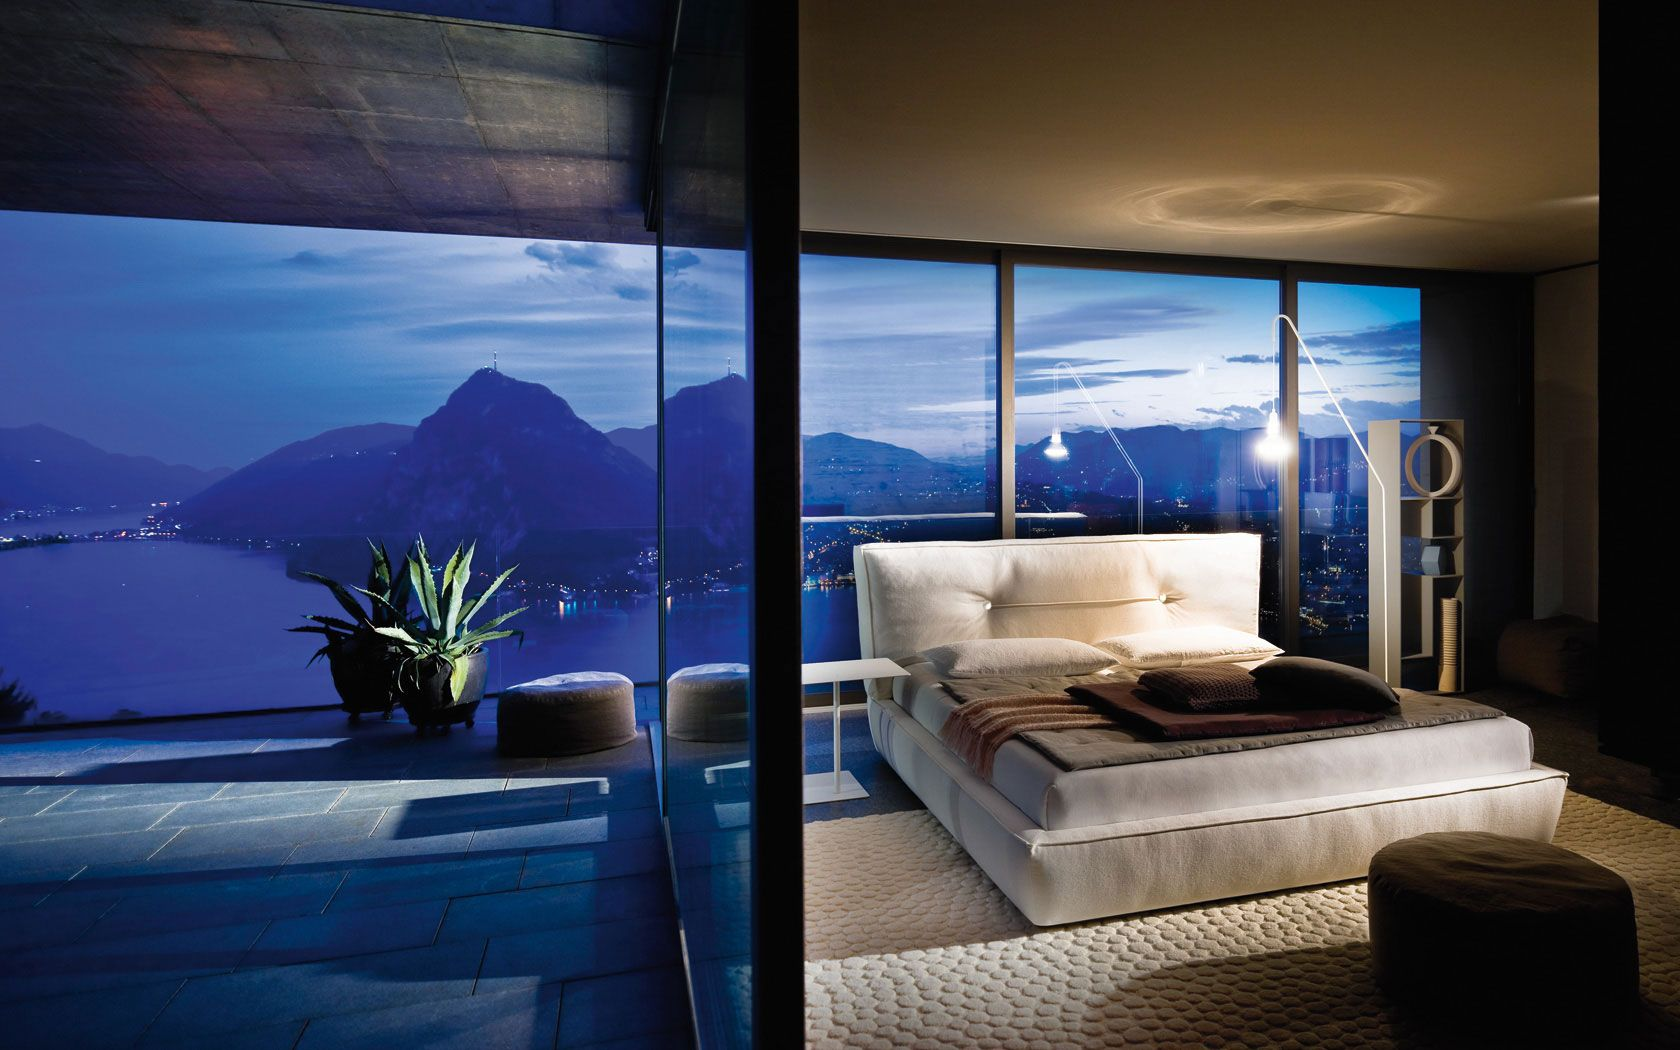 Bedroom With A Glass Wall By Night